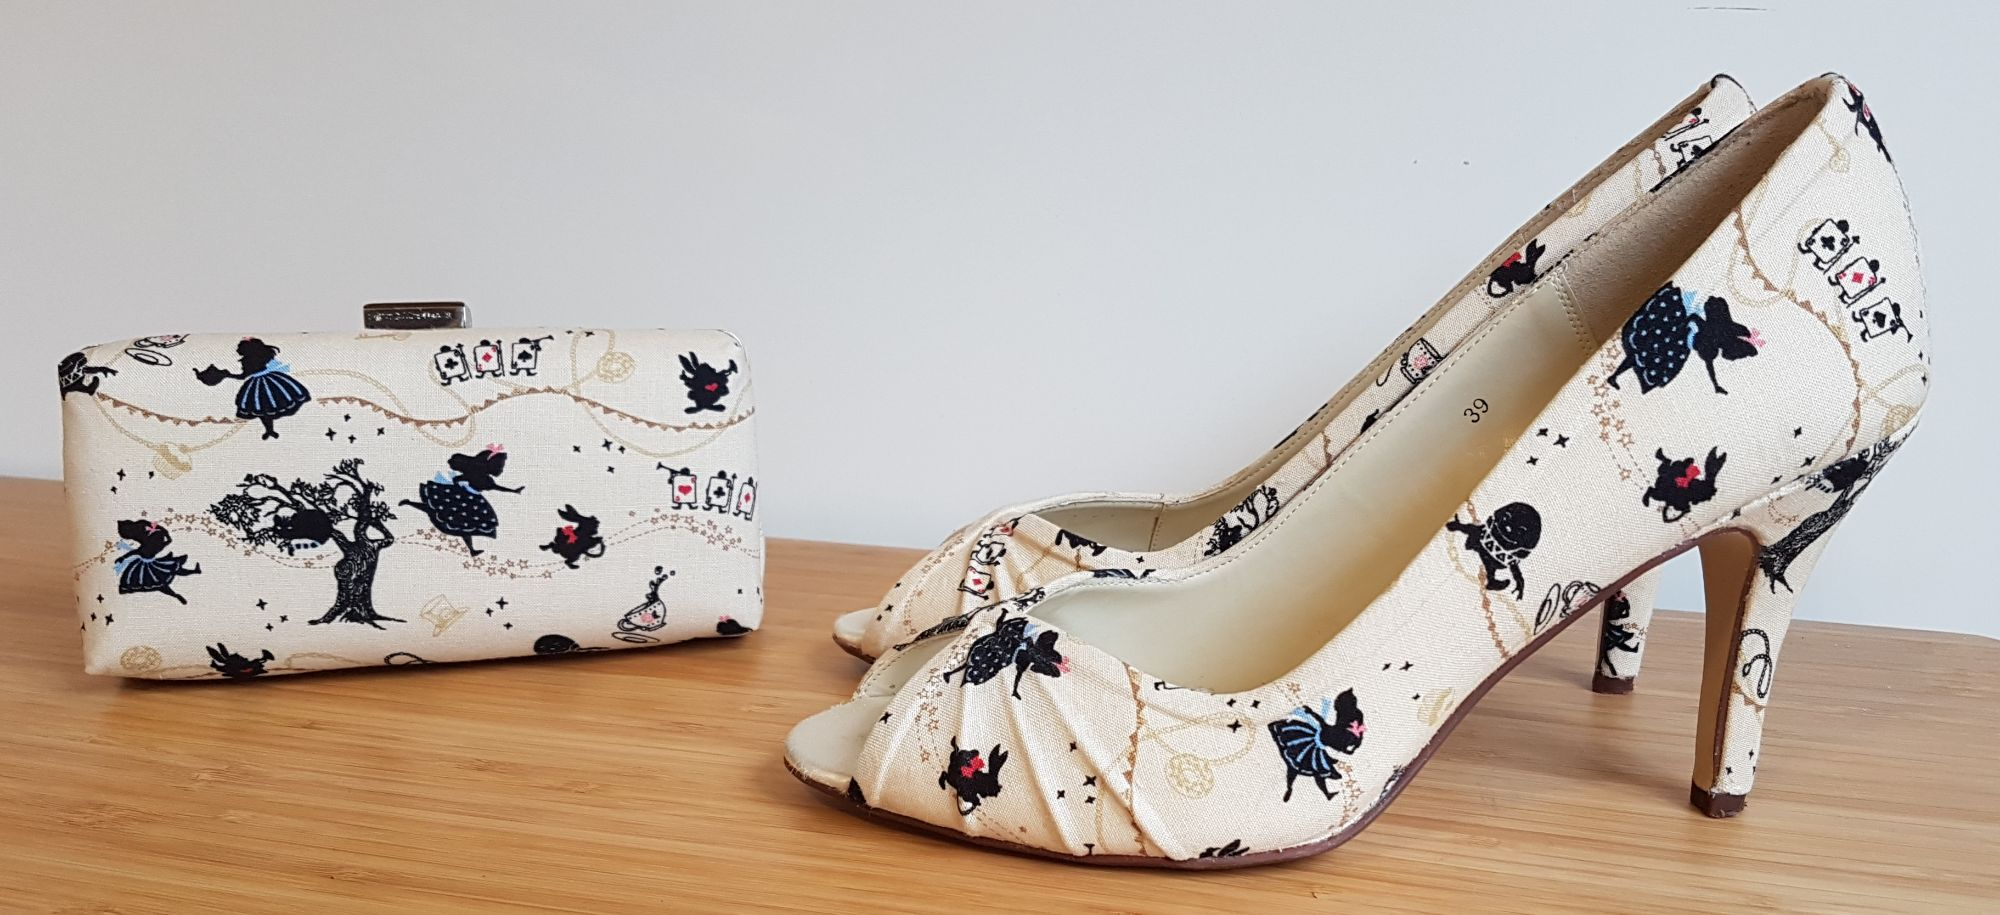 Alice in Wonderland heels and clutch bag